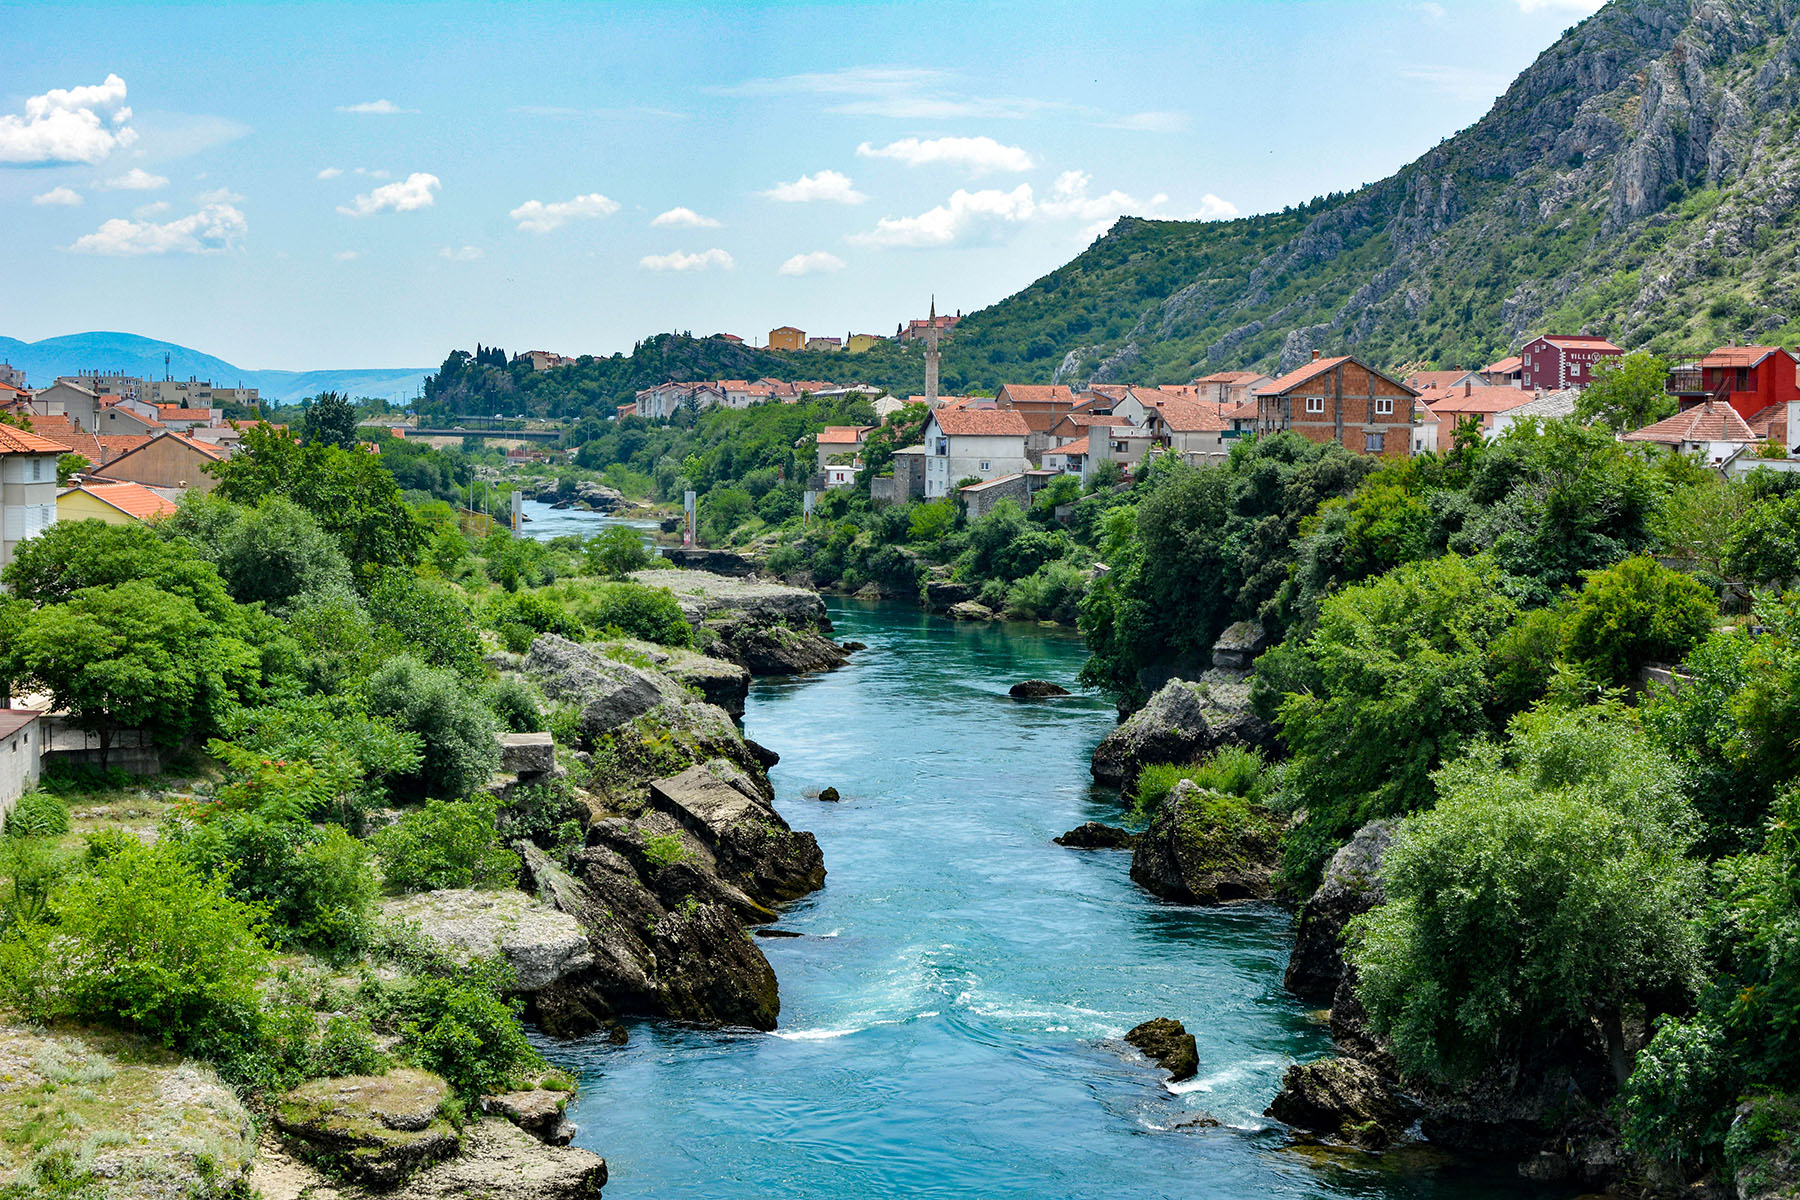 Top 5 Cities To Visit in Bosnia and Herzegovina